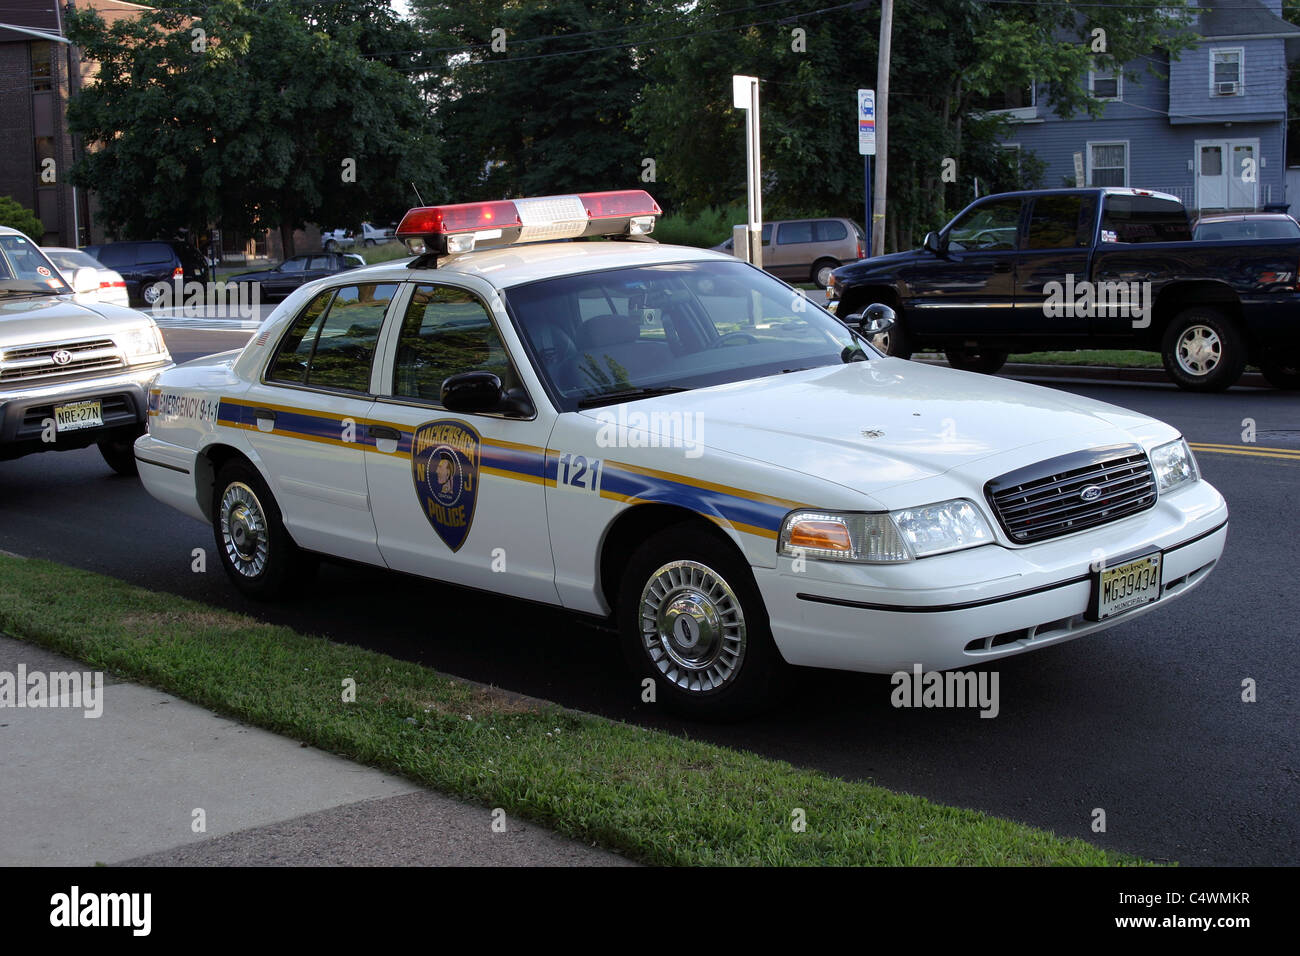 interceptor in white rear angle view b90r74 rm ford crown victoria police car hackensack police department stock image